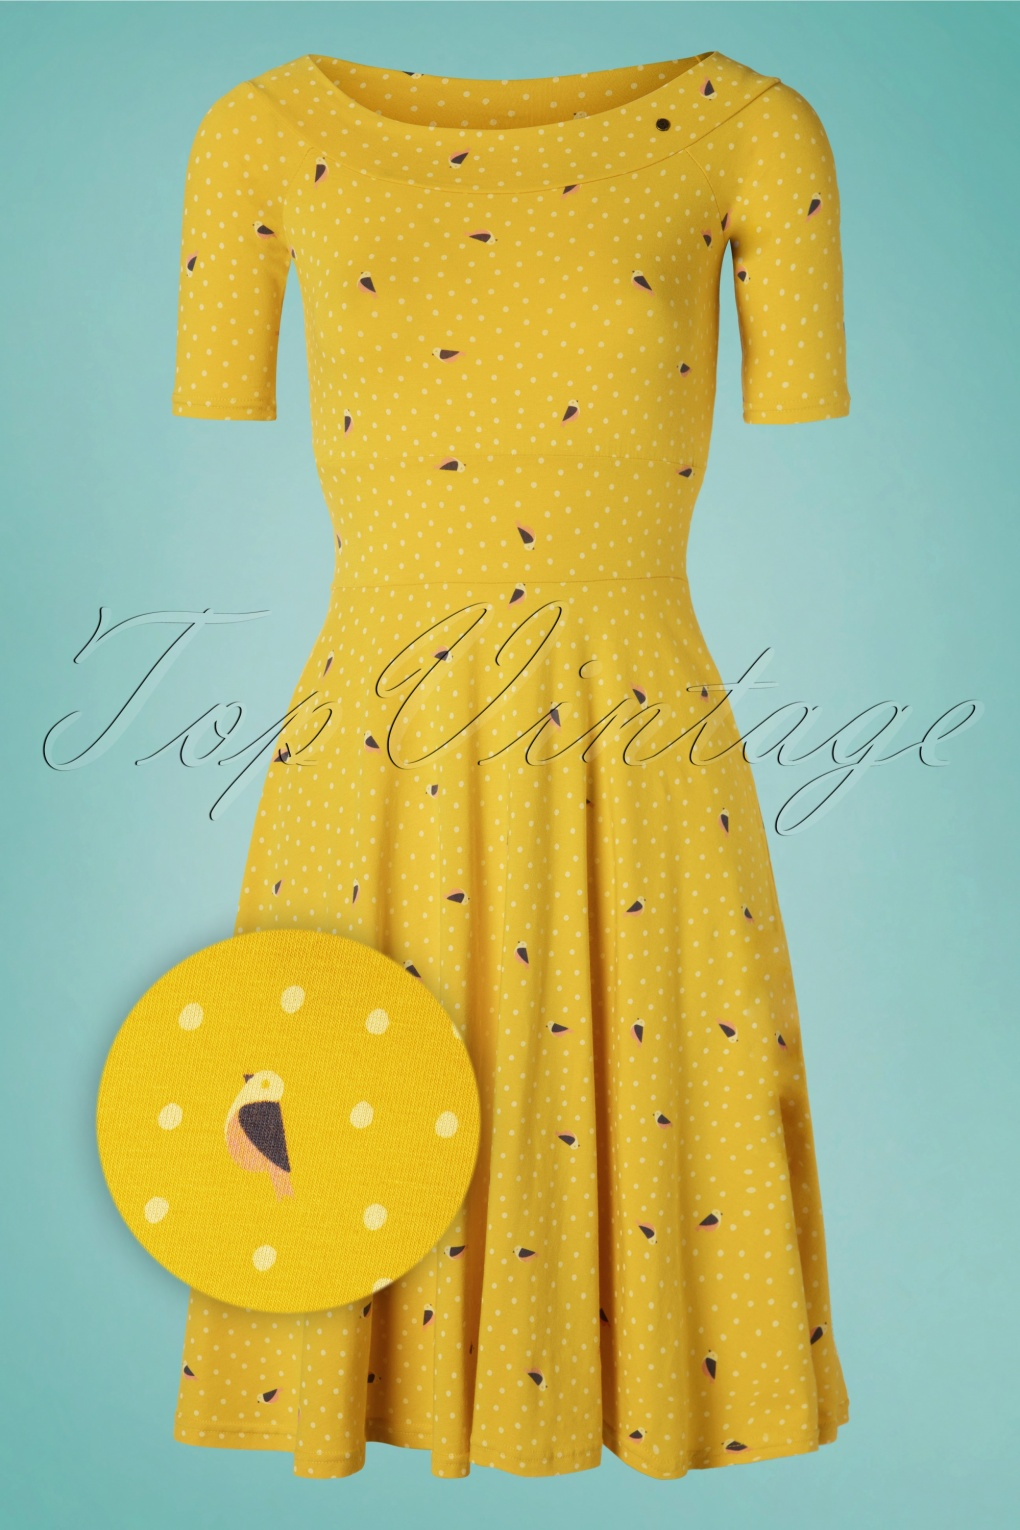 60s Roswitas Dolcevita Dress in Fly Over Alpine